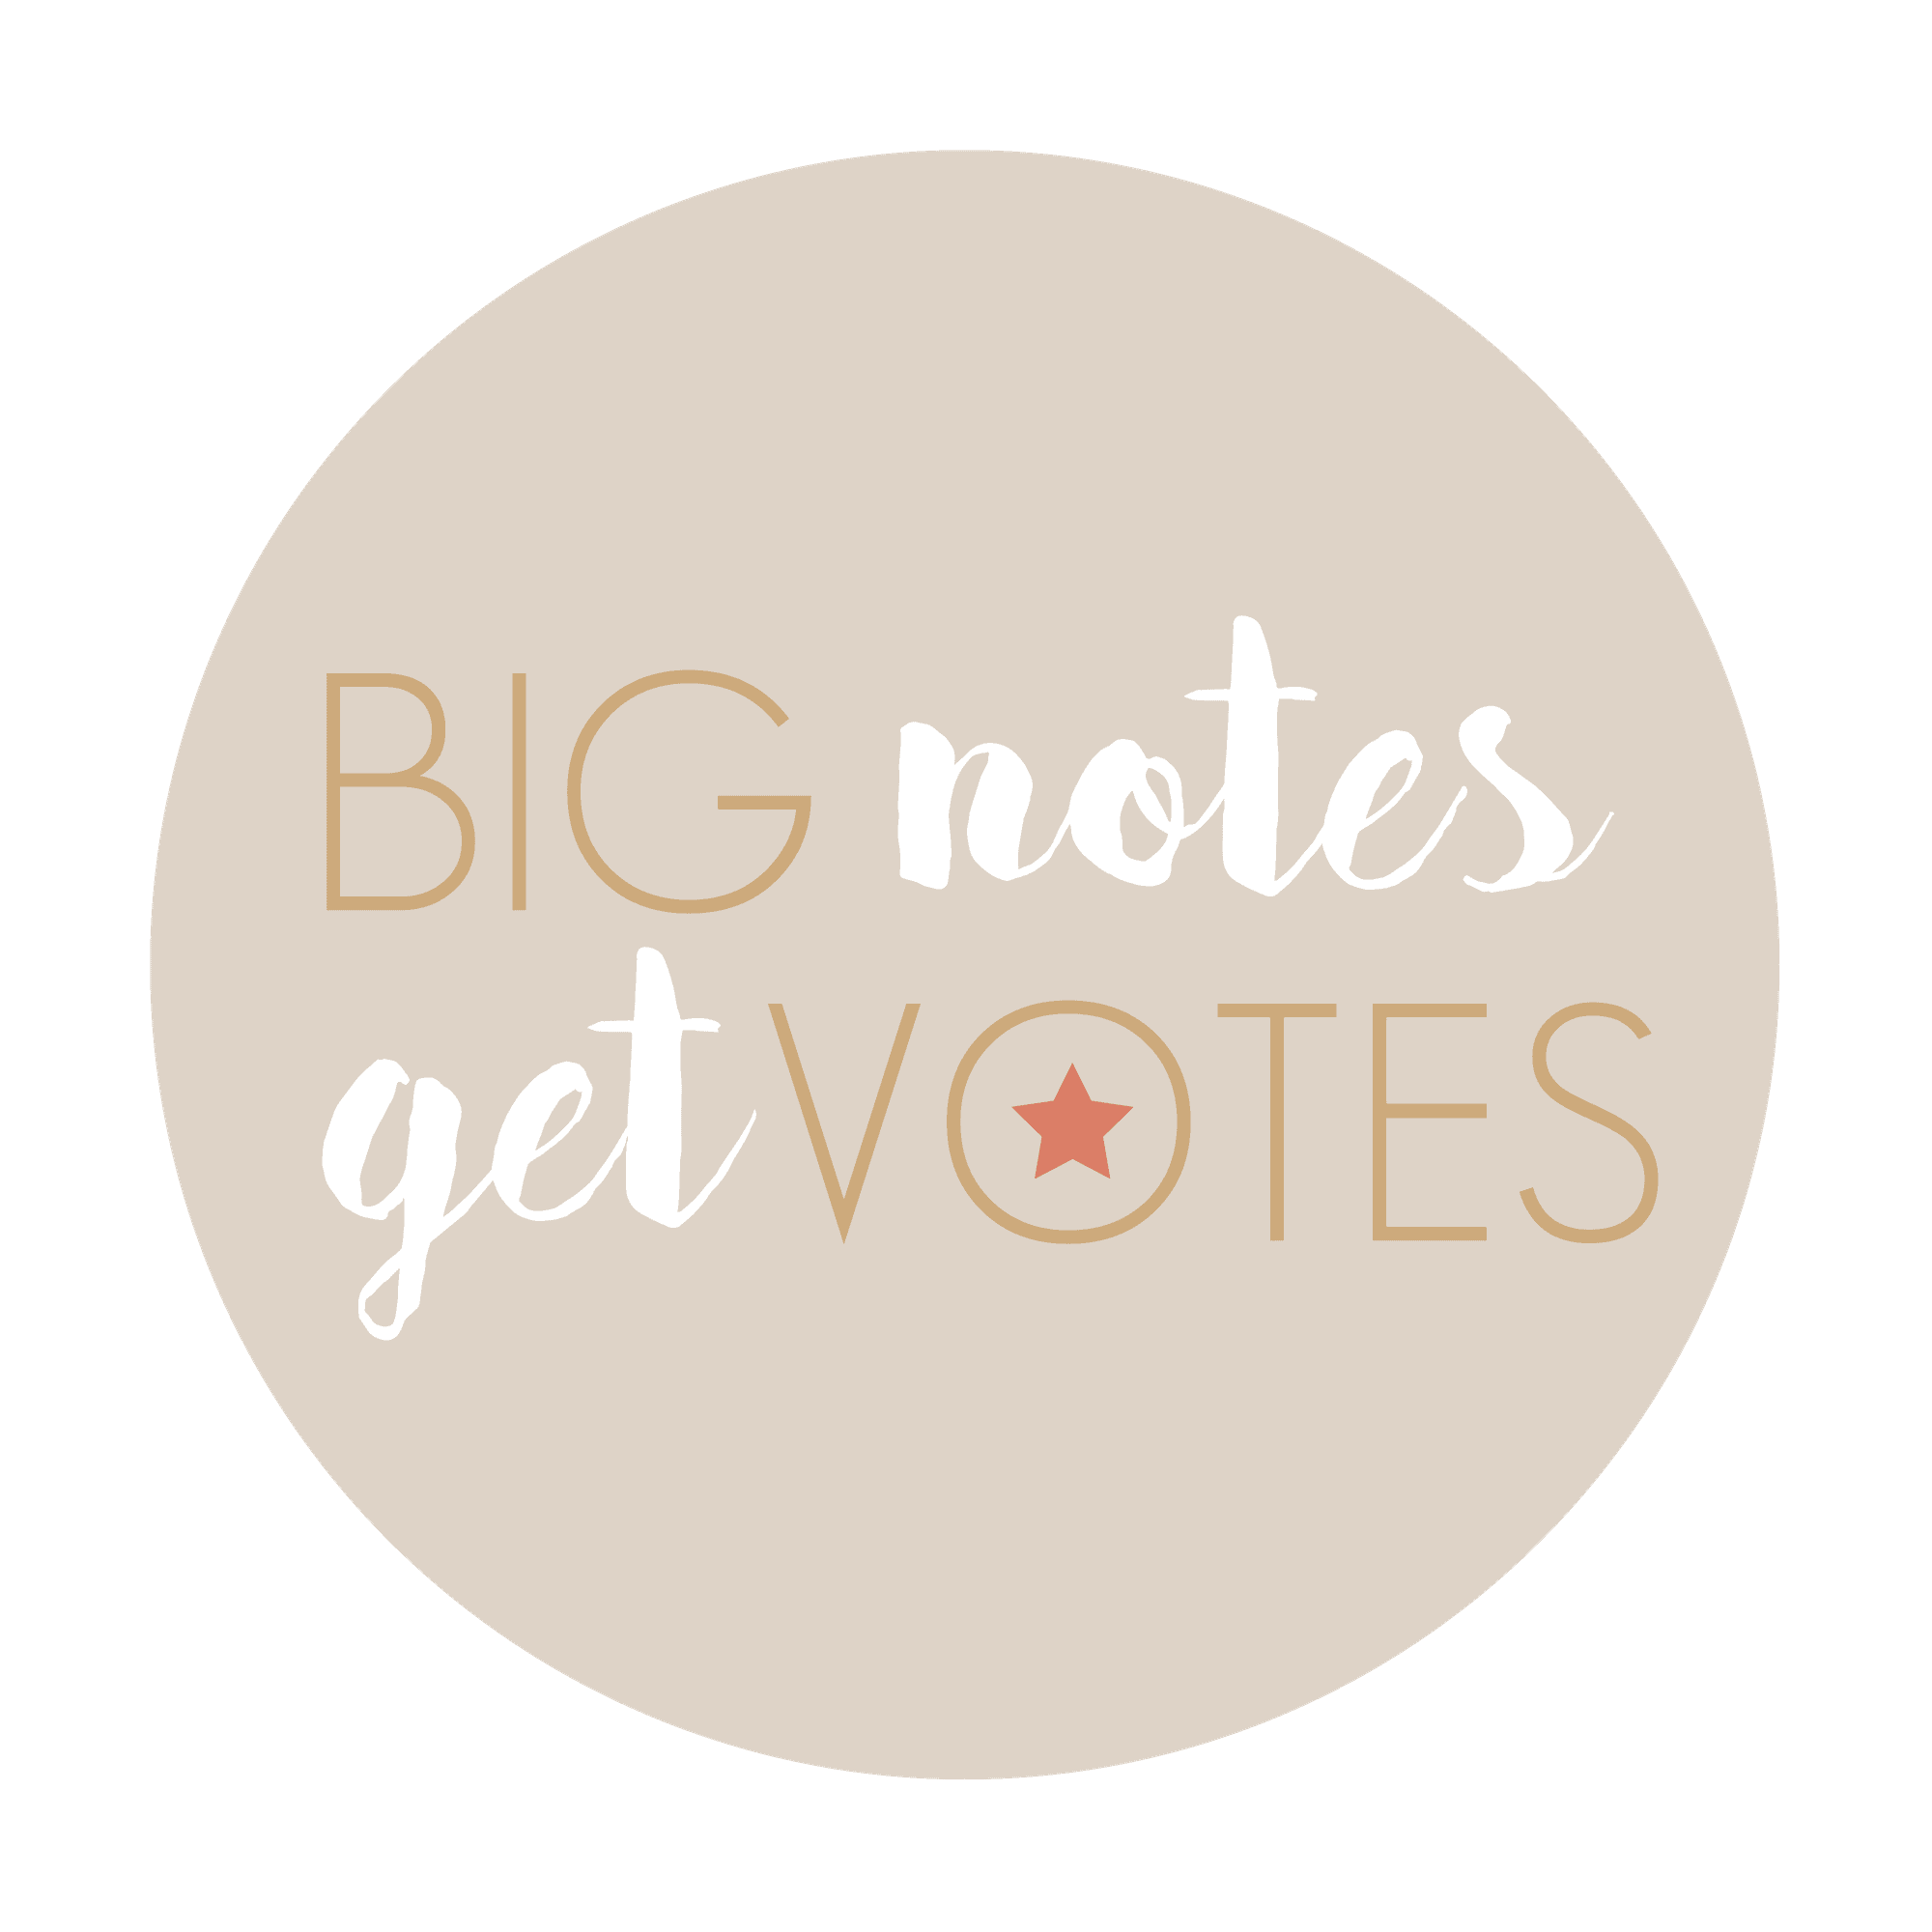 Big Notes Get Votes | Cherie Mathieson